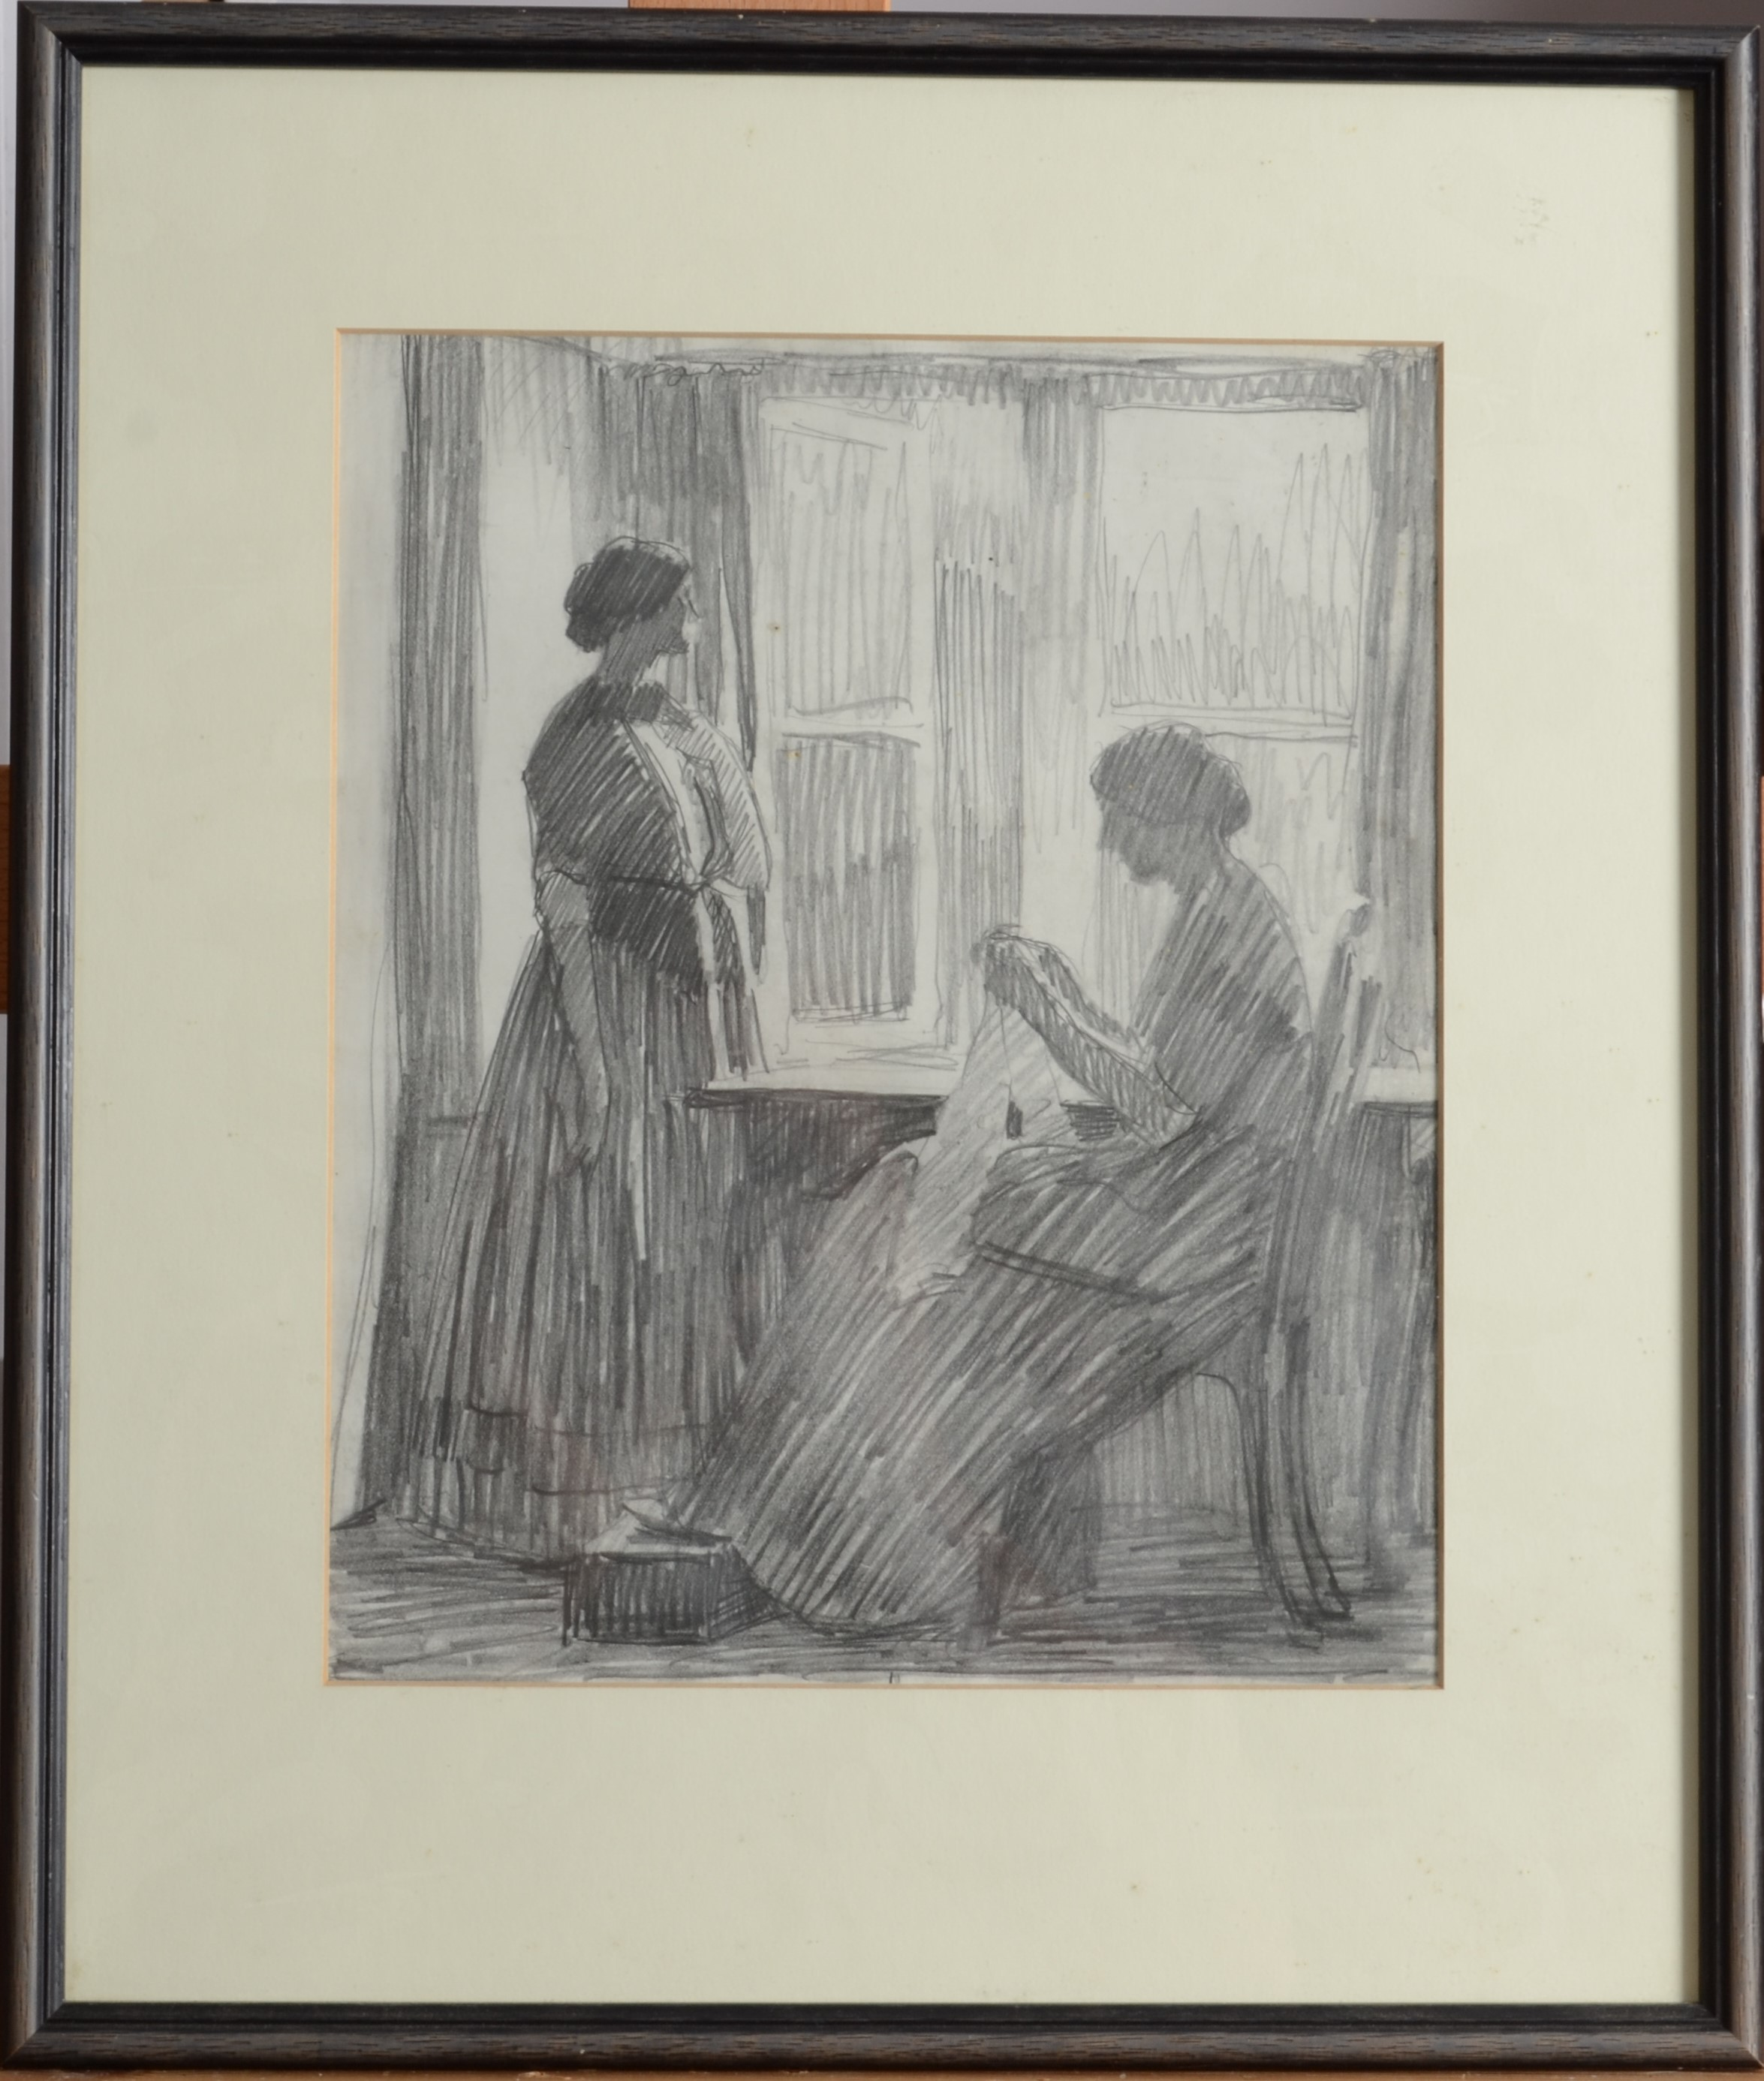 Lot 43 - LAURA KNIGHT Two Figures Pencil on paper 26 x 21 cm Provenance:from the estate of S J Lamorna Birch.